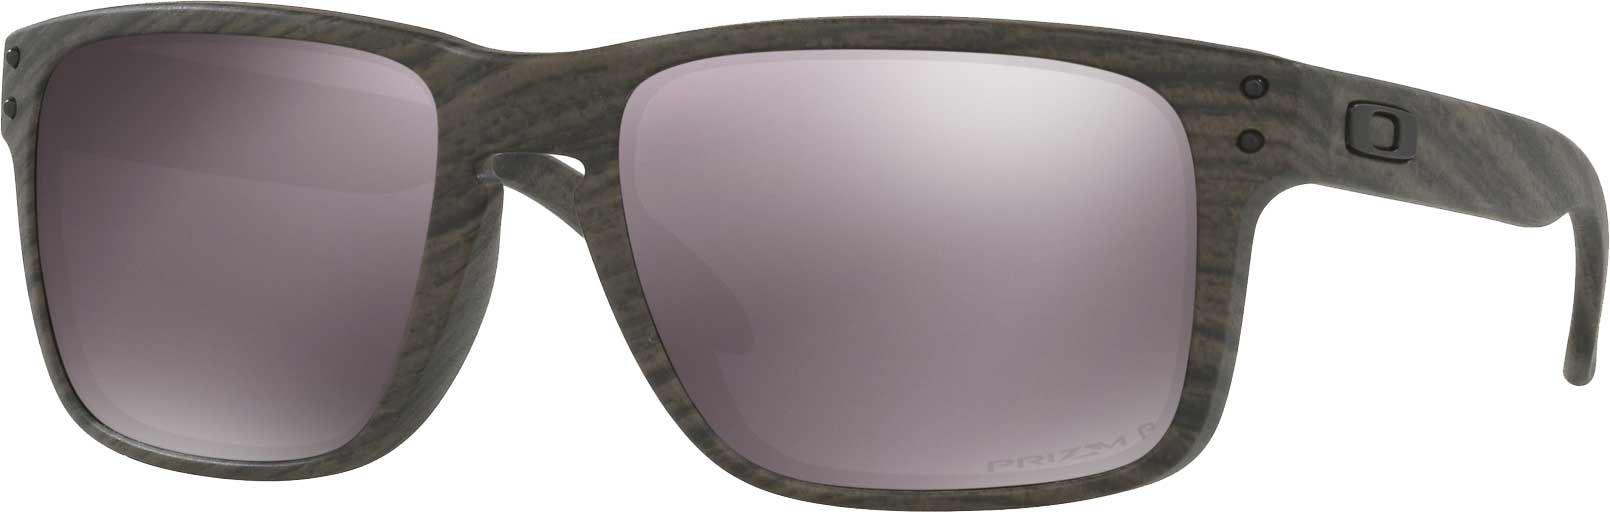 ce1b80fb17ff Oakley. Men s Holbrook Polarized Sunglasses.  183 From Dick s Sporting Goods